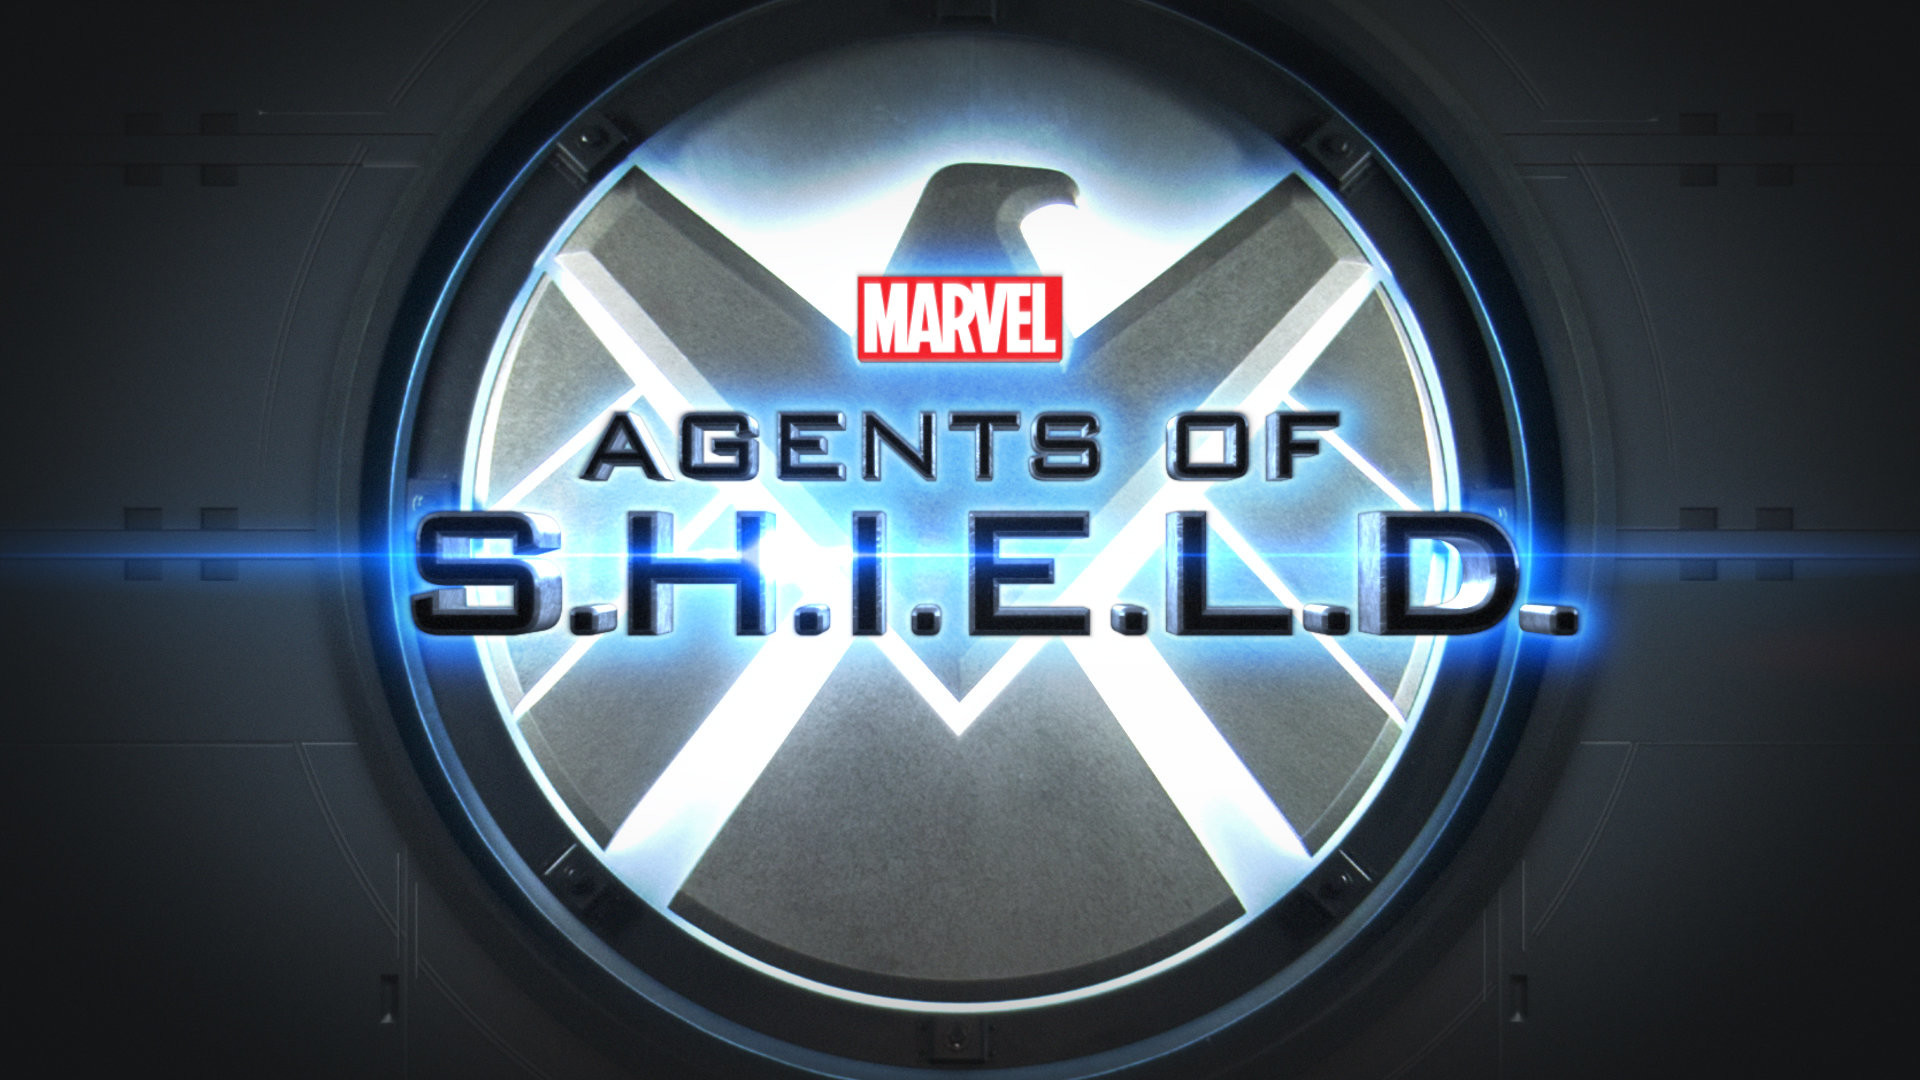 1920x1080 TV Show - Marvel's Agents of S.H.I.E.L.D. Wallpaper